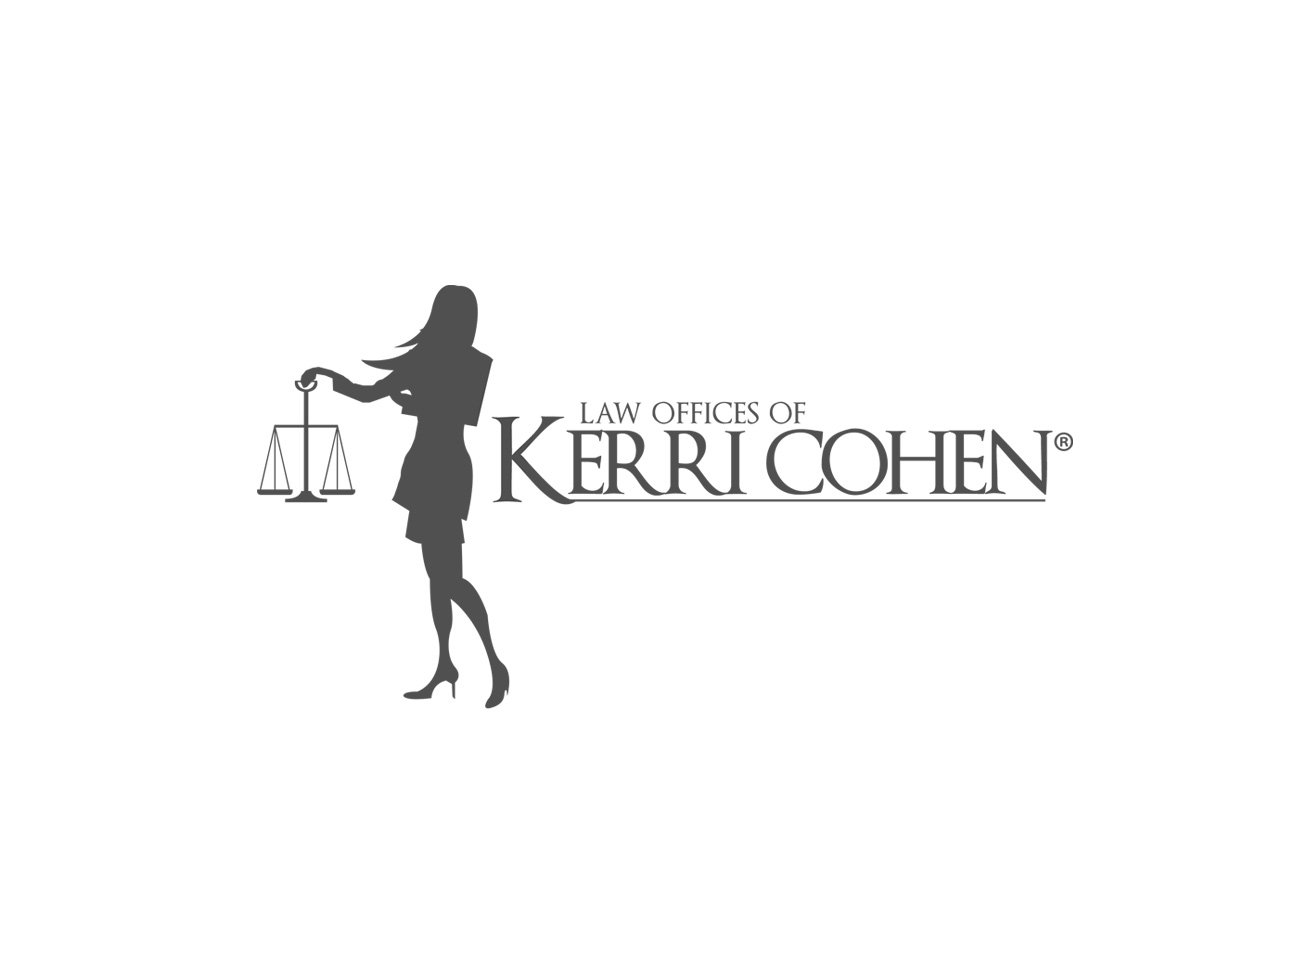 Serious, Modern, Business Logo Design for Law Offices of